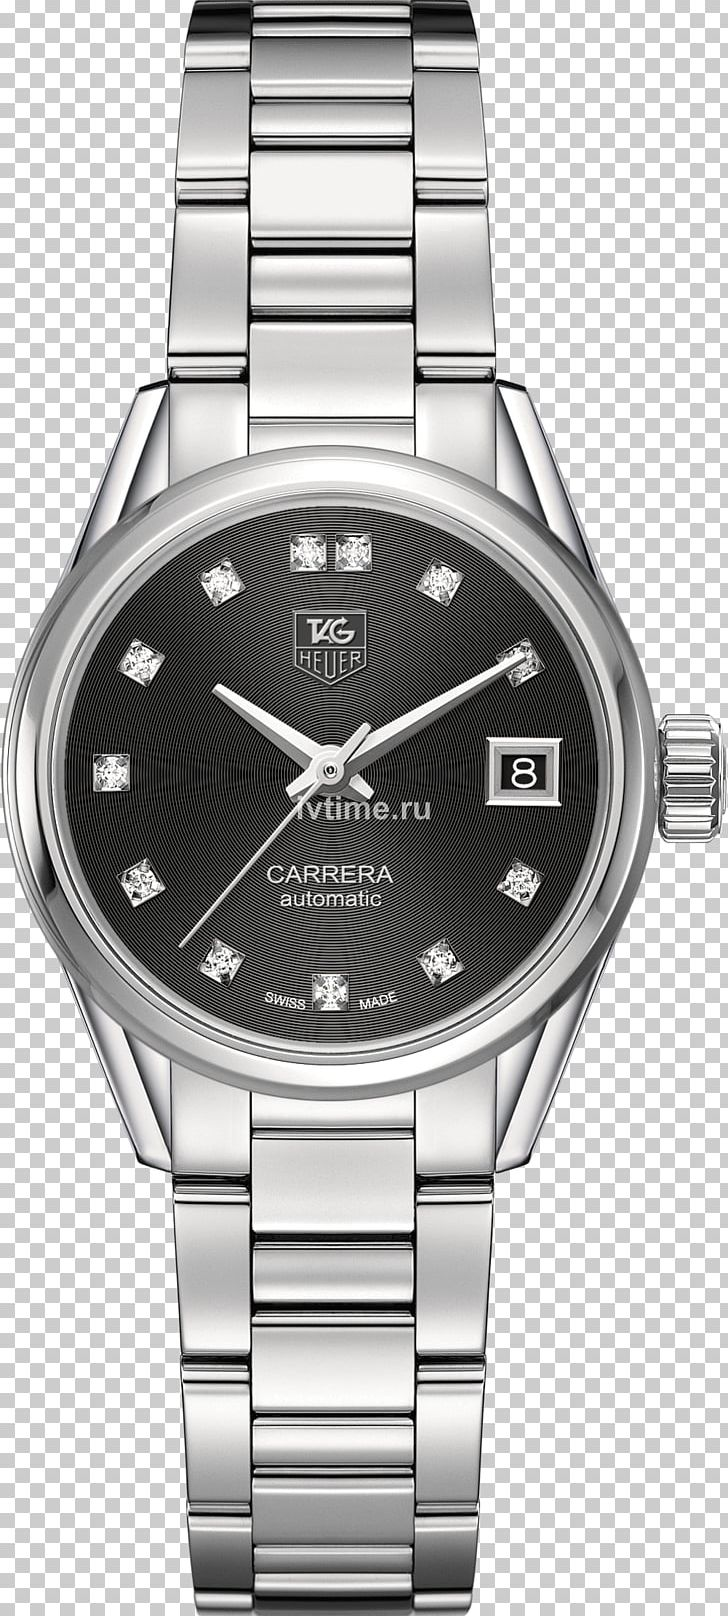 Tag heuer carrera clipart picture freeuse download TAG Heuer Carrera Calibre 5 Automatic Watch Clock PNG ... picture freeuse download